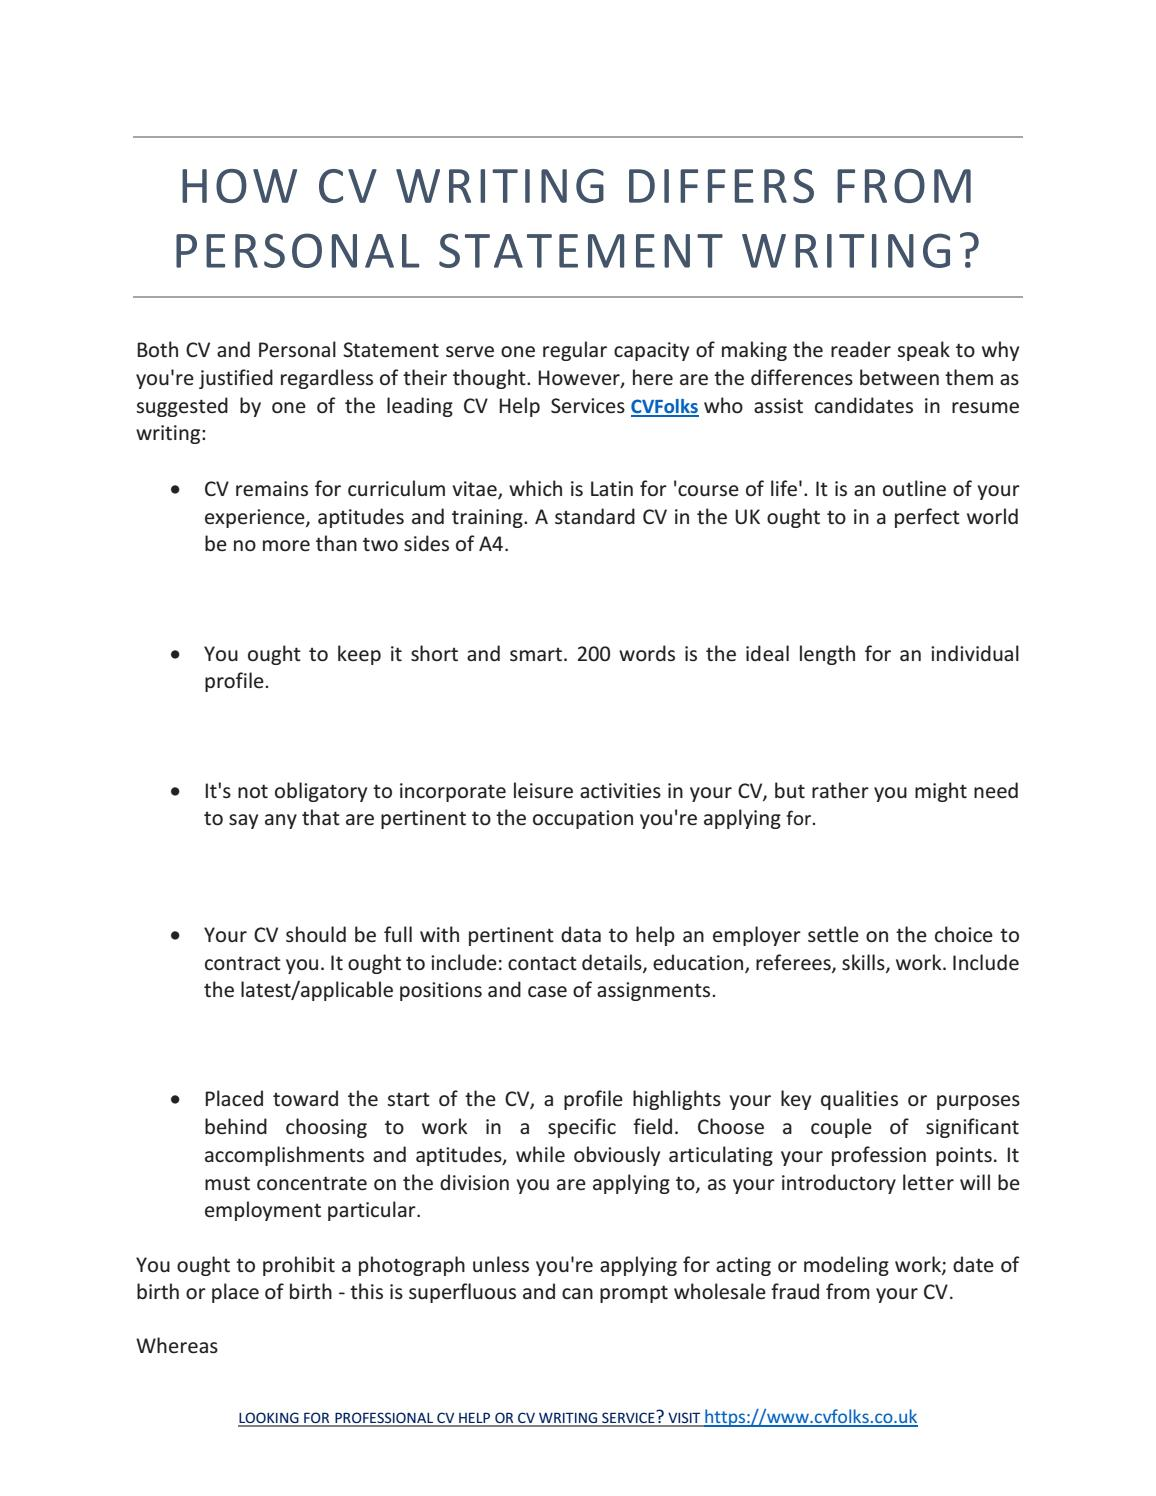 how cv writing differs from personal statement writing by